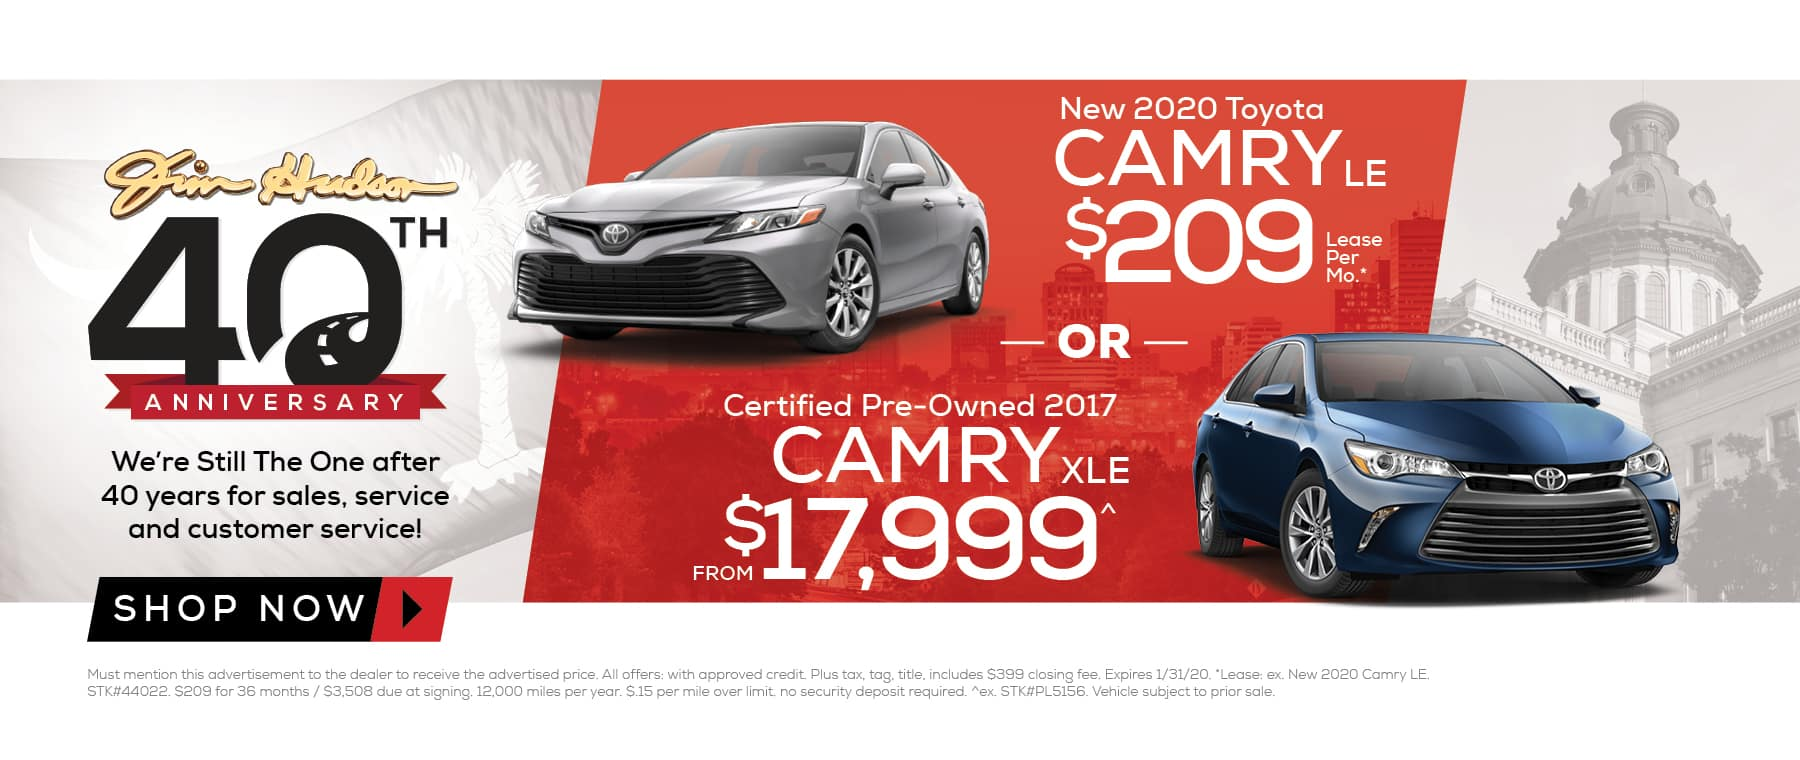 New 2020 Toyota Camry or CPO 2017 Camry